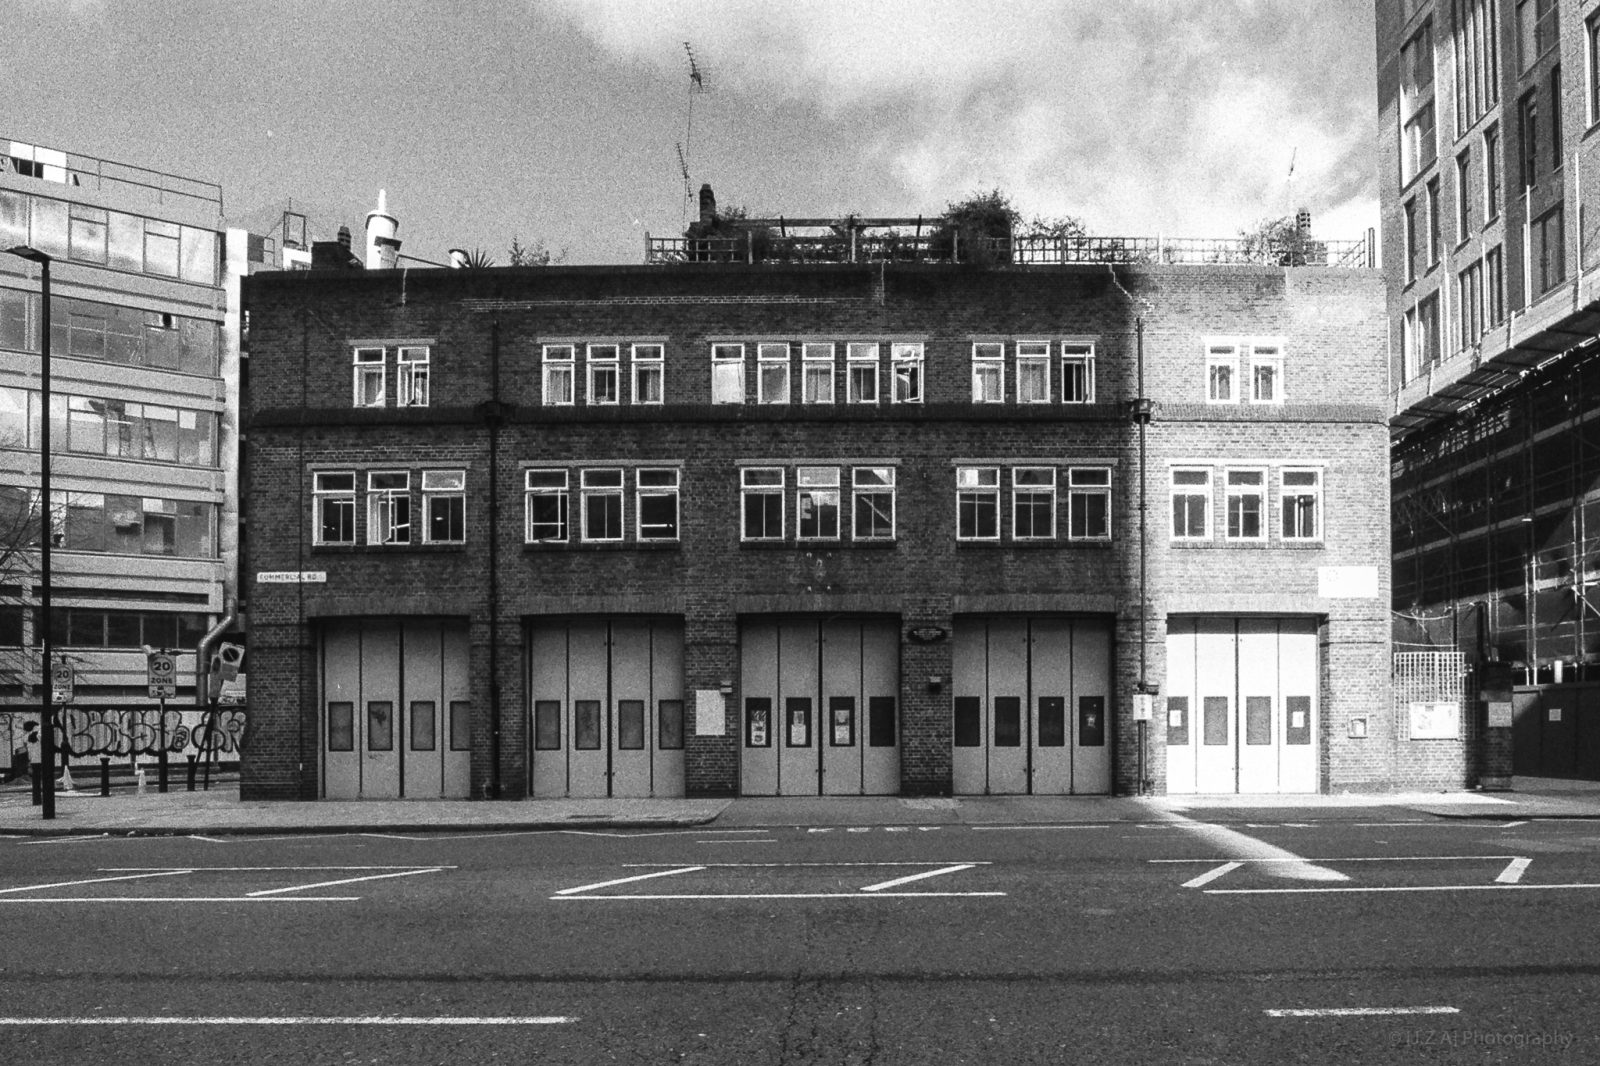 Whitechapel Fire Station